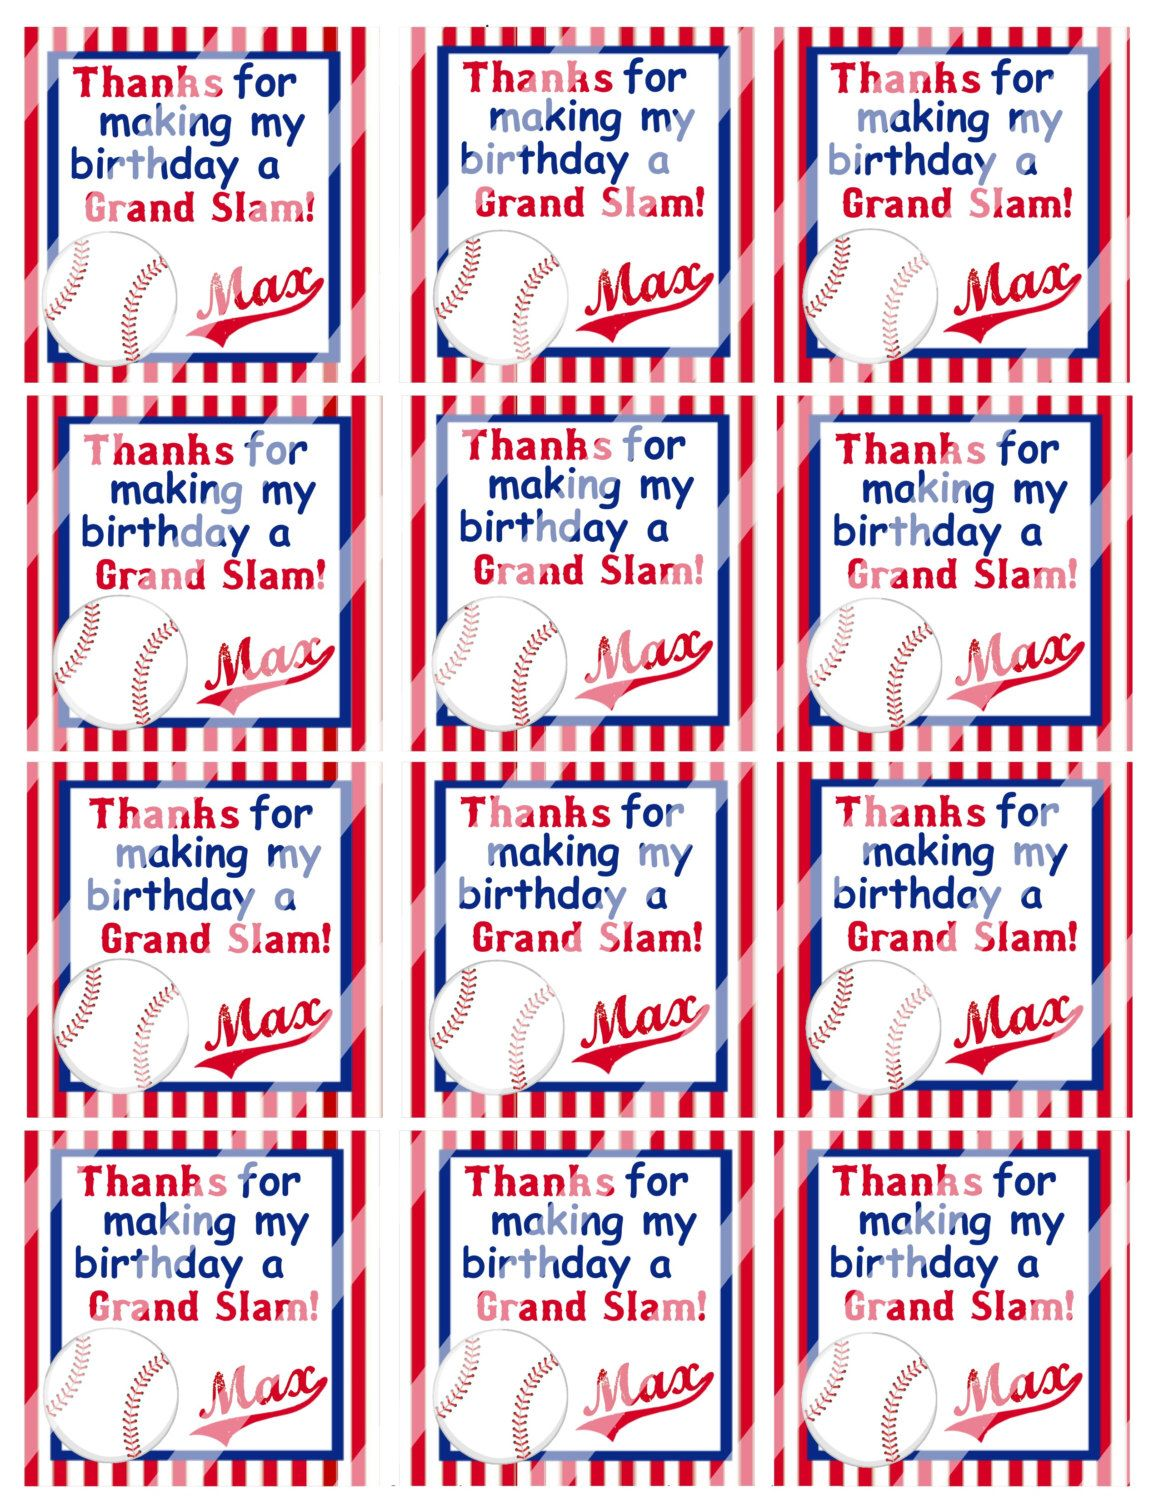 DIY Personalized Baseball Birthday Favor Hang Tags Party Goody Gift Bags Printable Download Decoration Sports Boys Red Blue by susanefird on Etsy https://www.etsy.com/listing/187192145/diy-personalized-baseball-birthday-favor